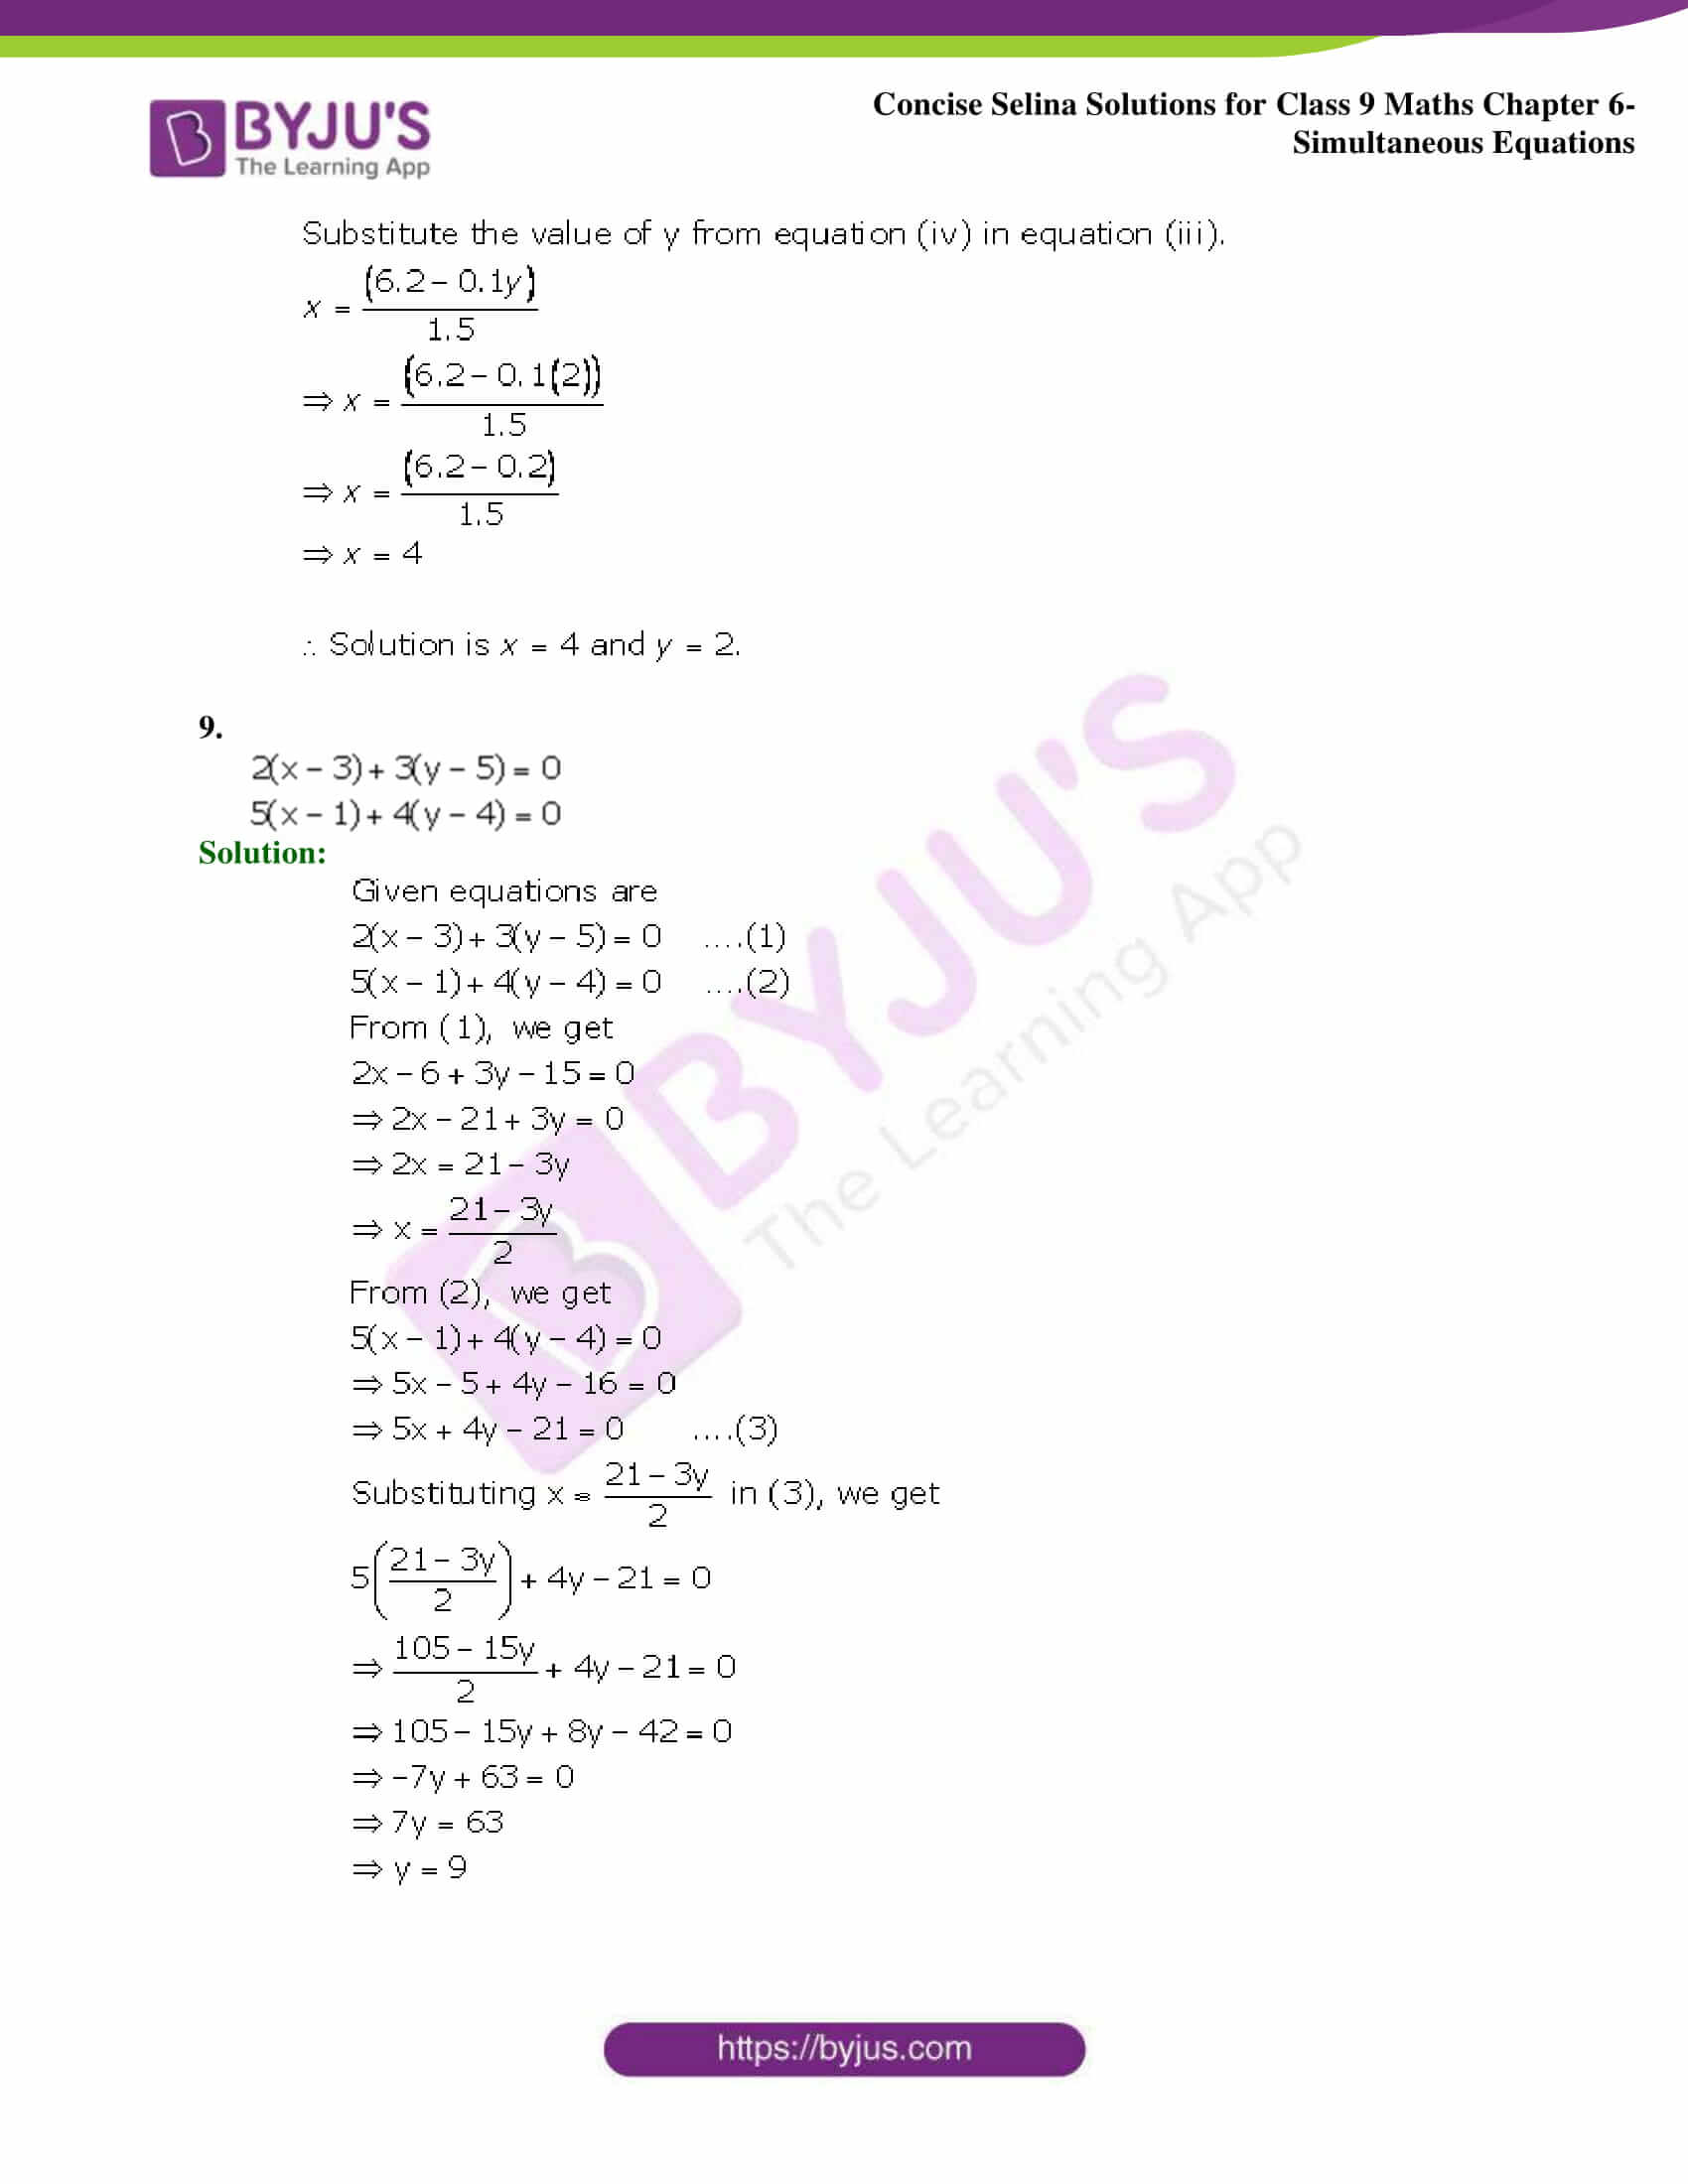 Selina Solutions Class 9 Maths Chapter 6 Simultaneous Equations part 05